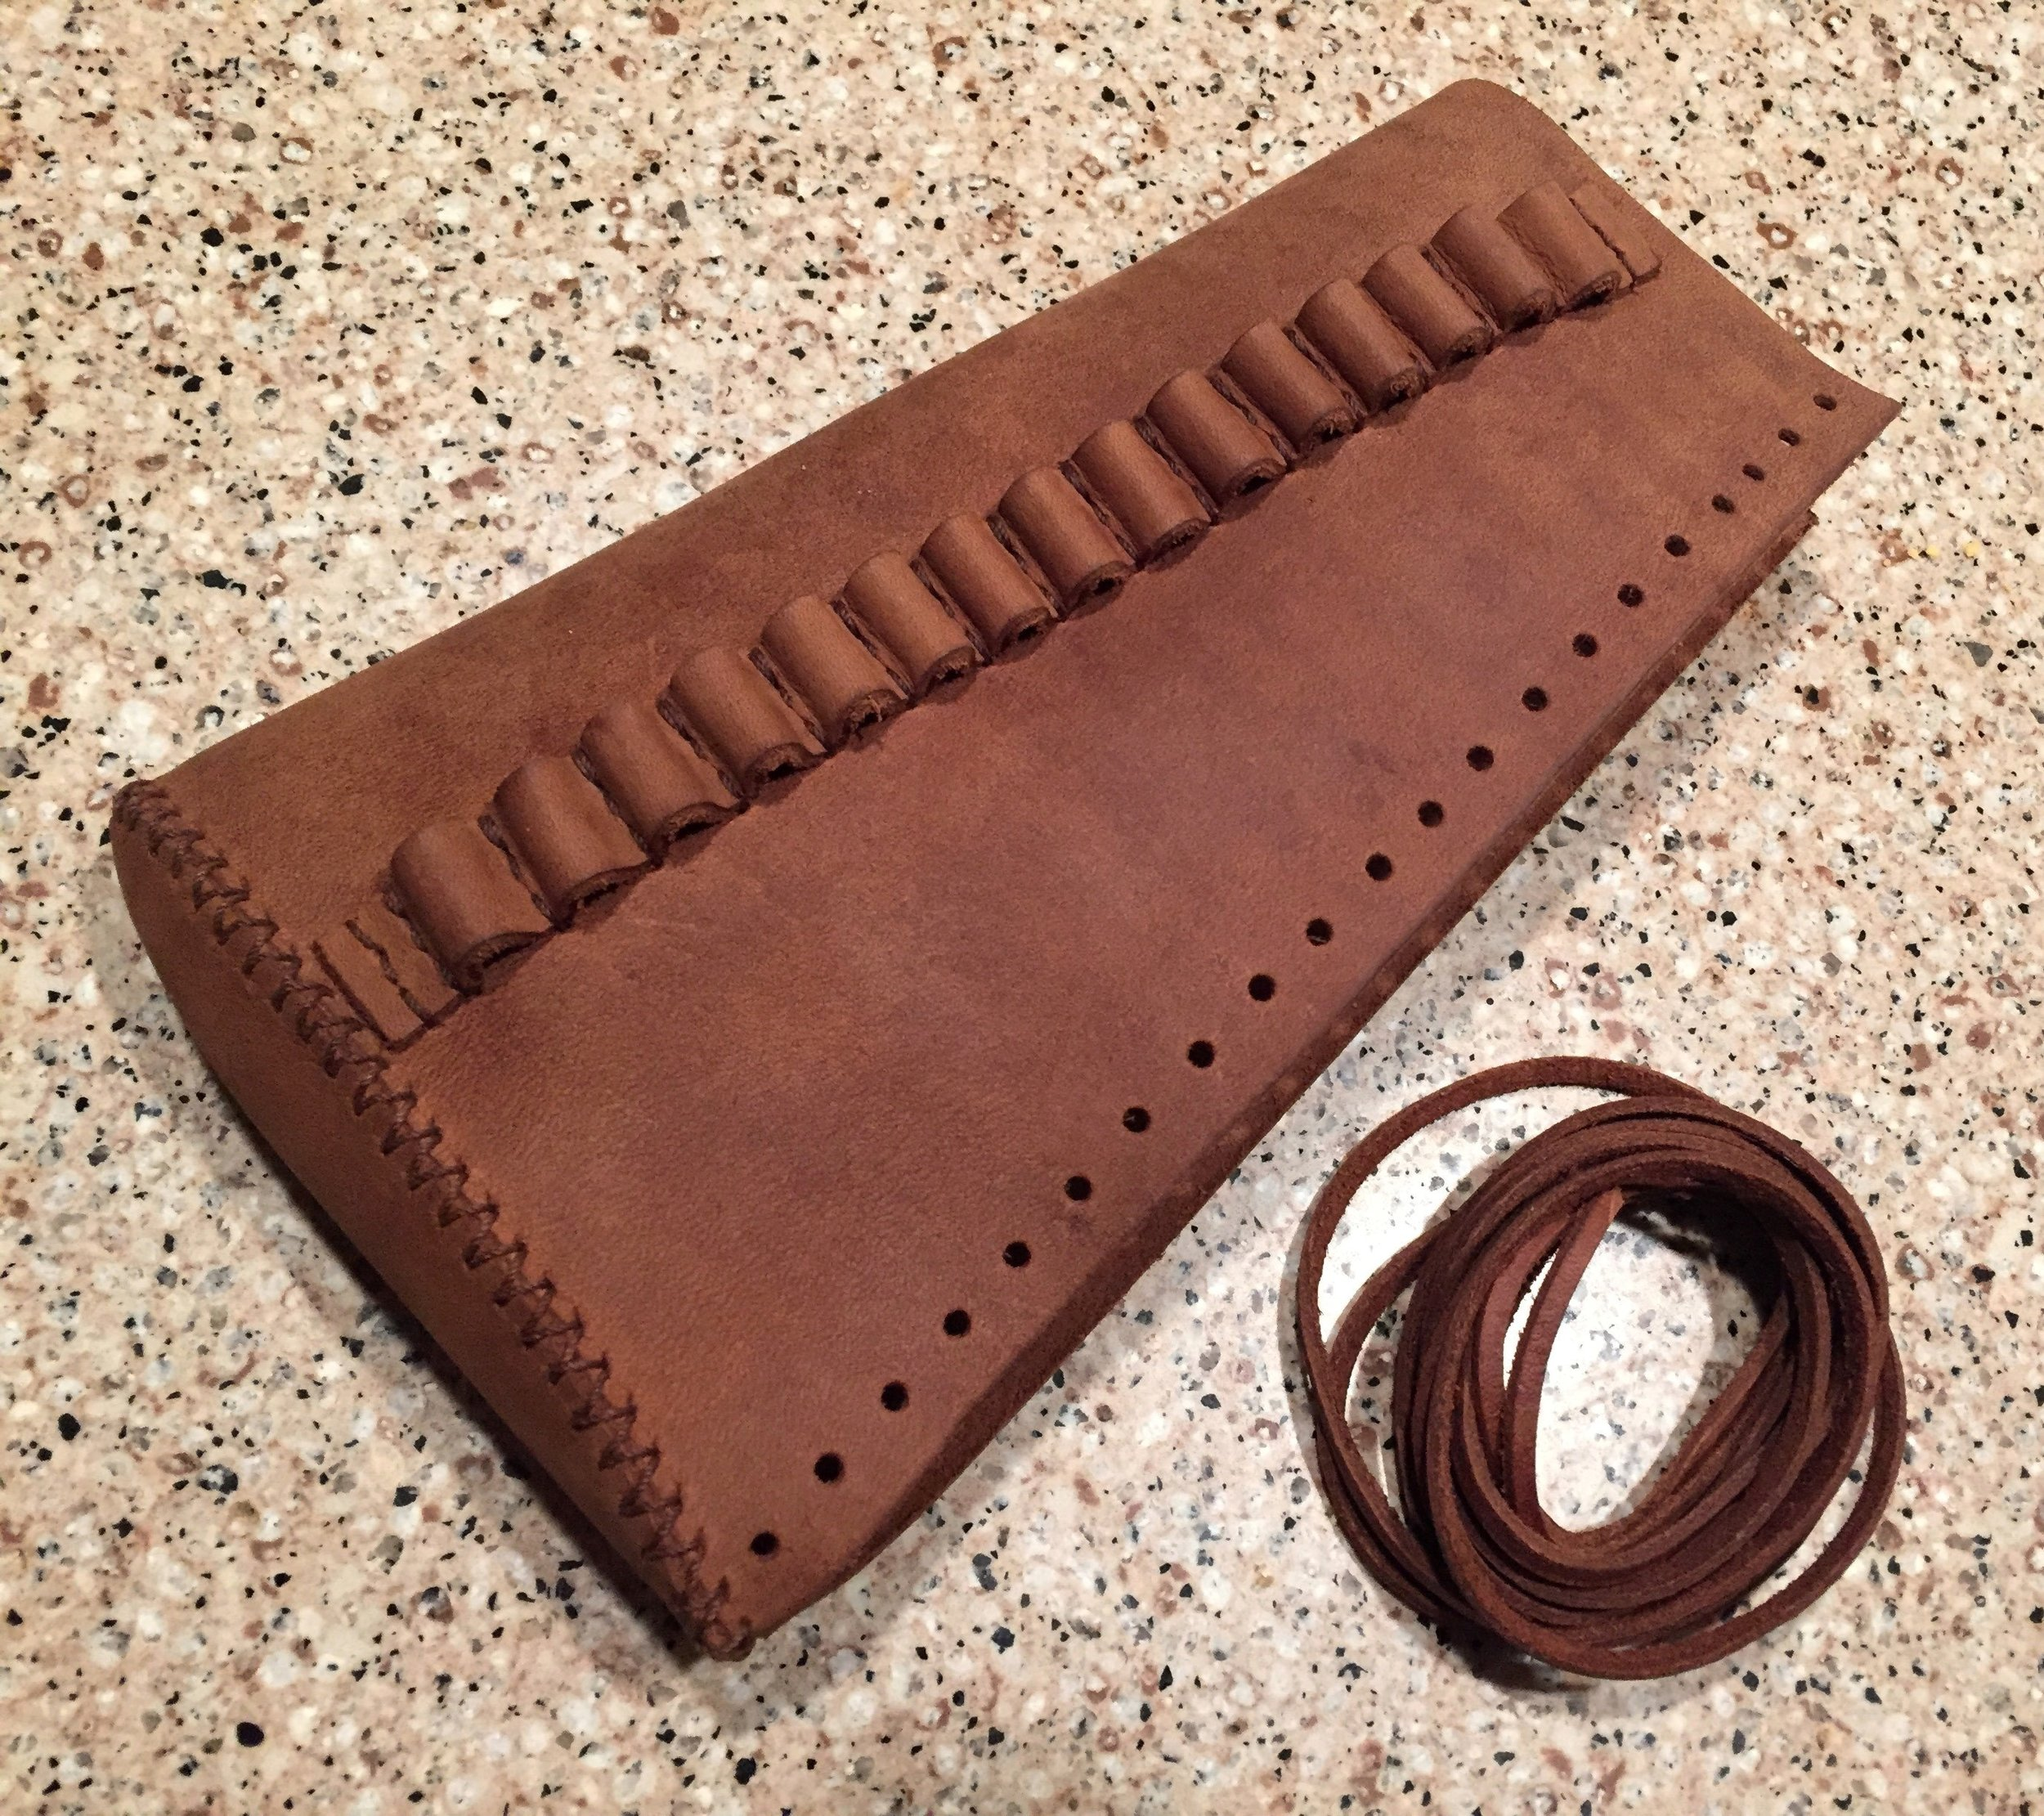 Circle M Brand - buttstock cuff (fully enclosed) with .22 loops.JPG